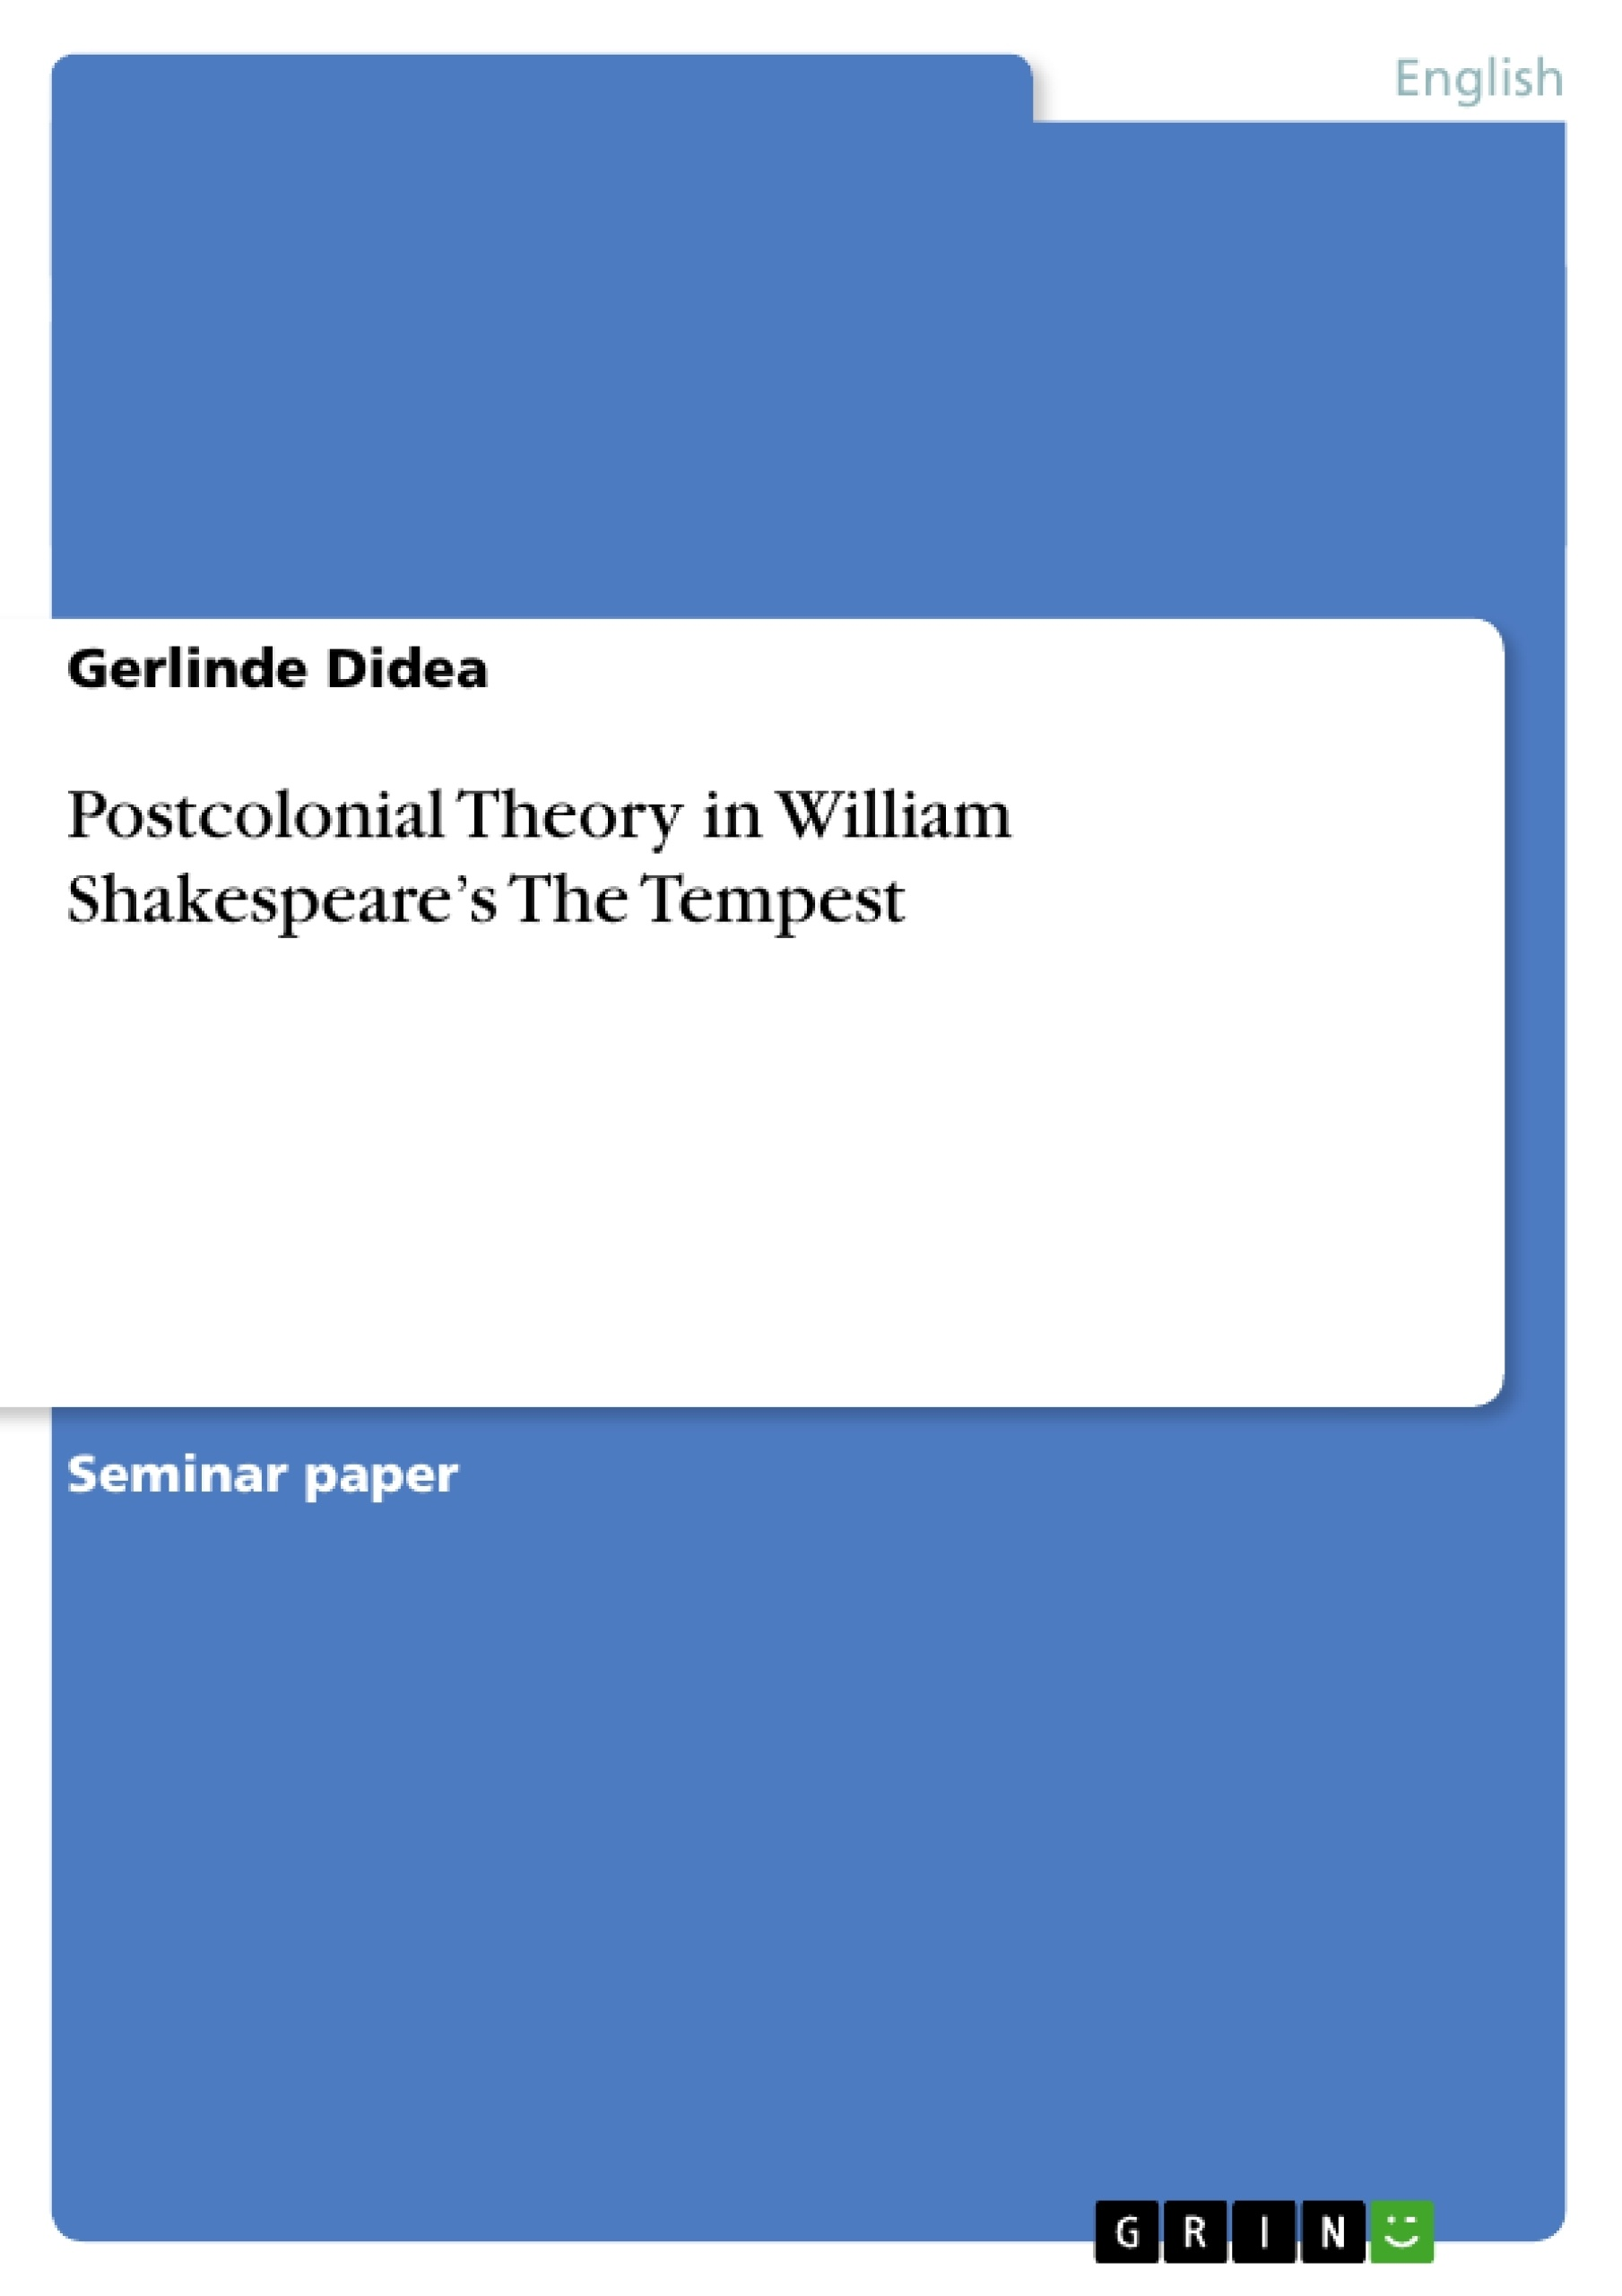 Title: Postcolonial Theory in William Shakespeare's The Tempest